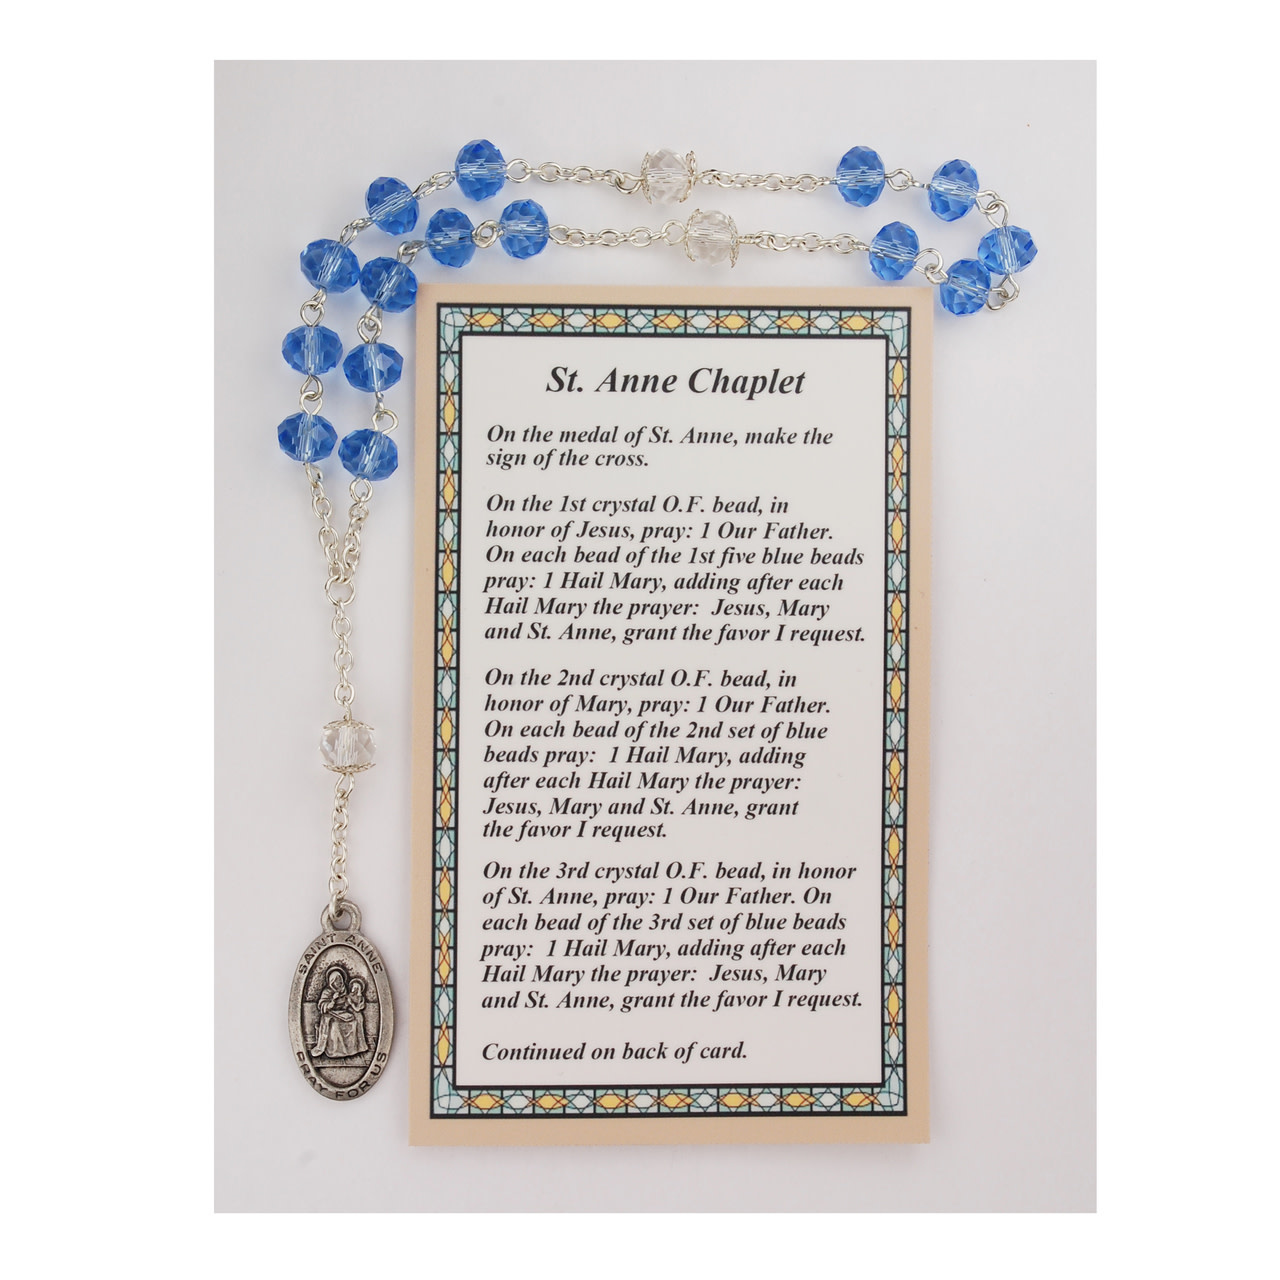 McVan St. Anne Chaplet with Card